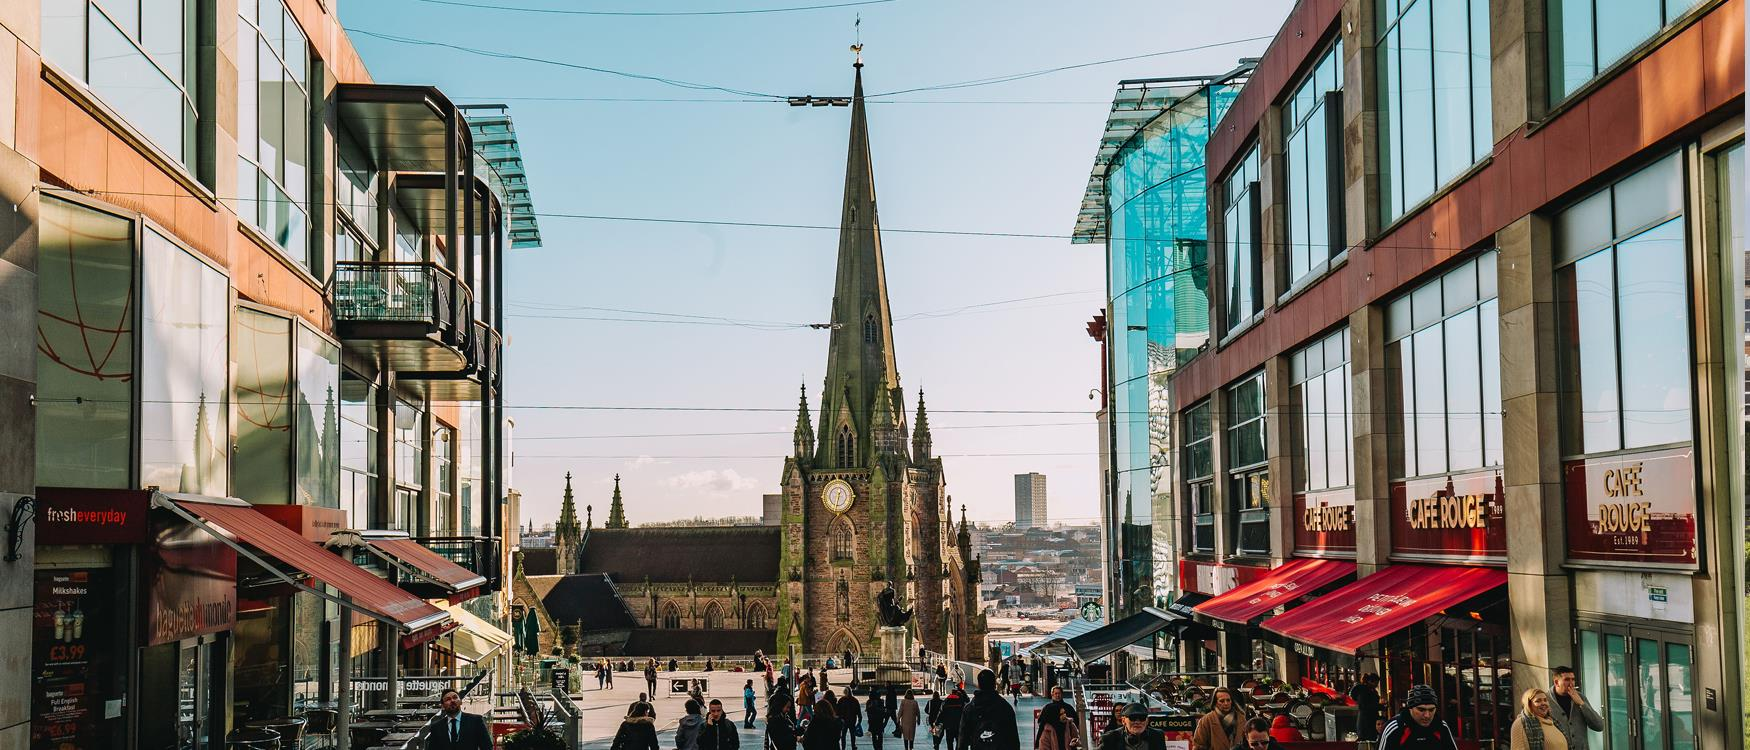 Recommendations, reviews and storytime from Brum's bloggers